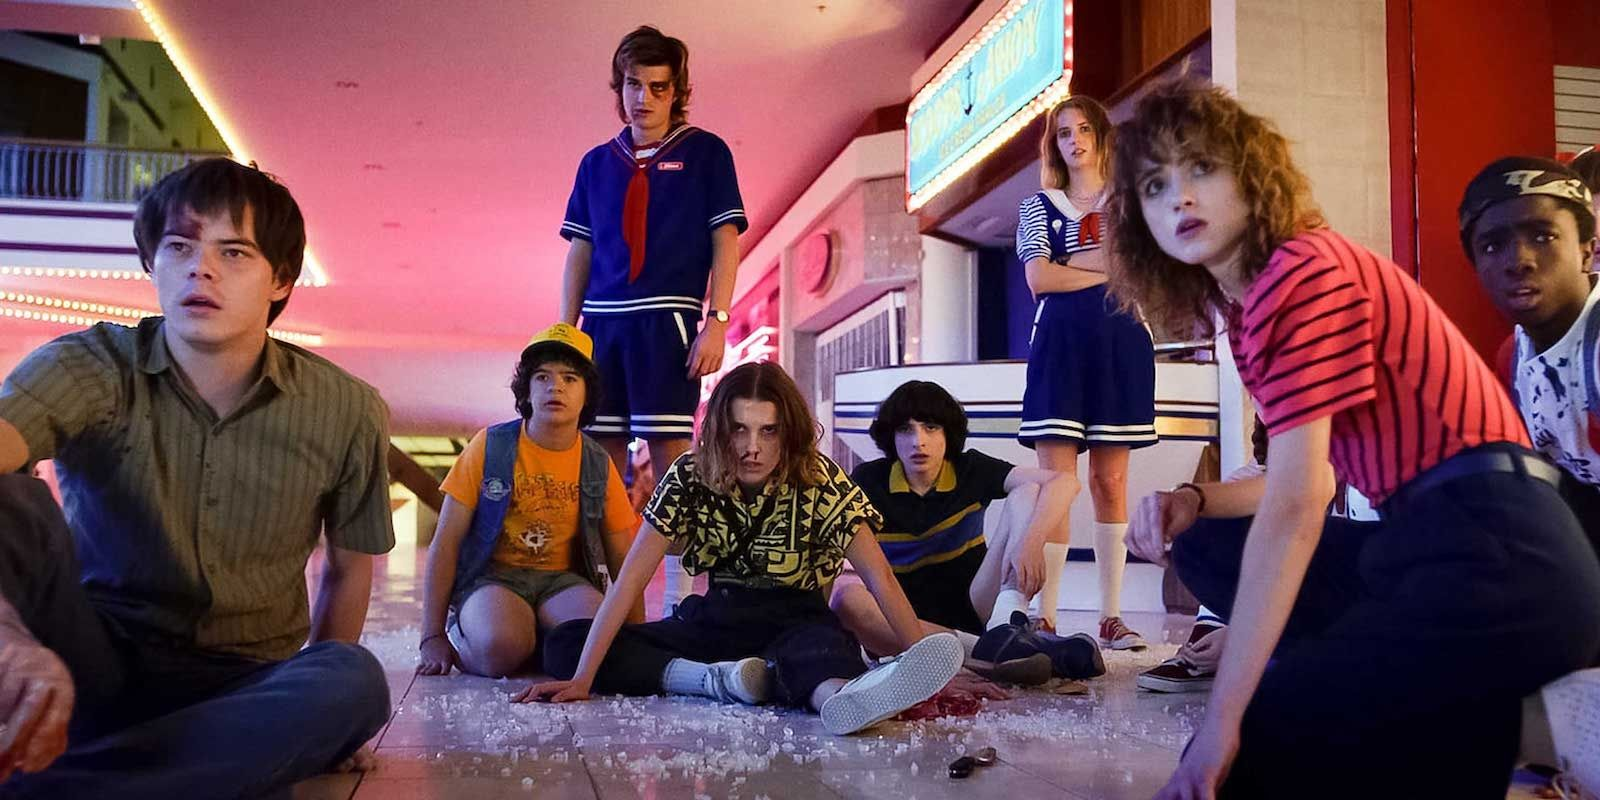 Stranger Things Season 3 Draws the Show's Biggest Viewership